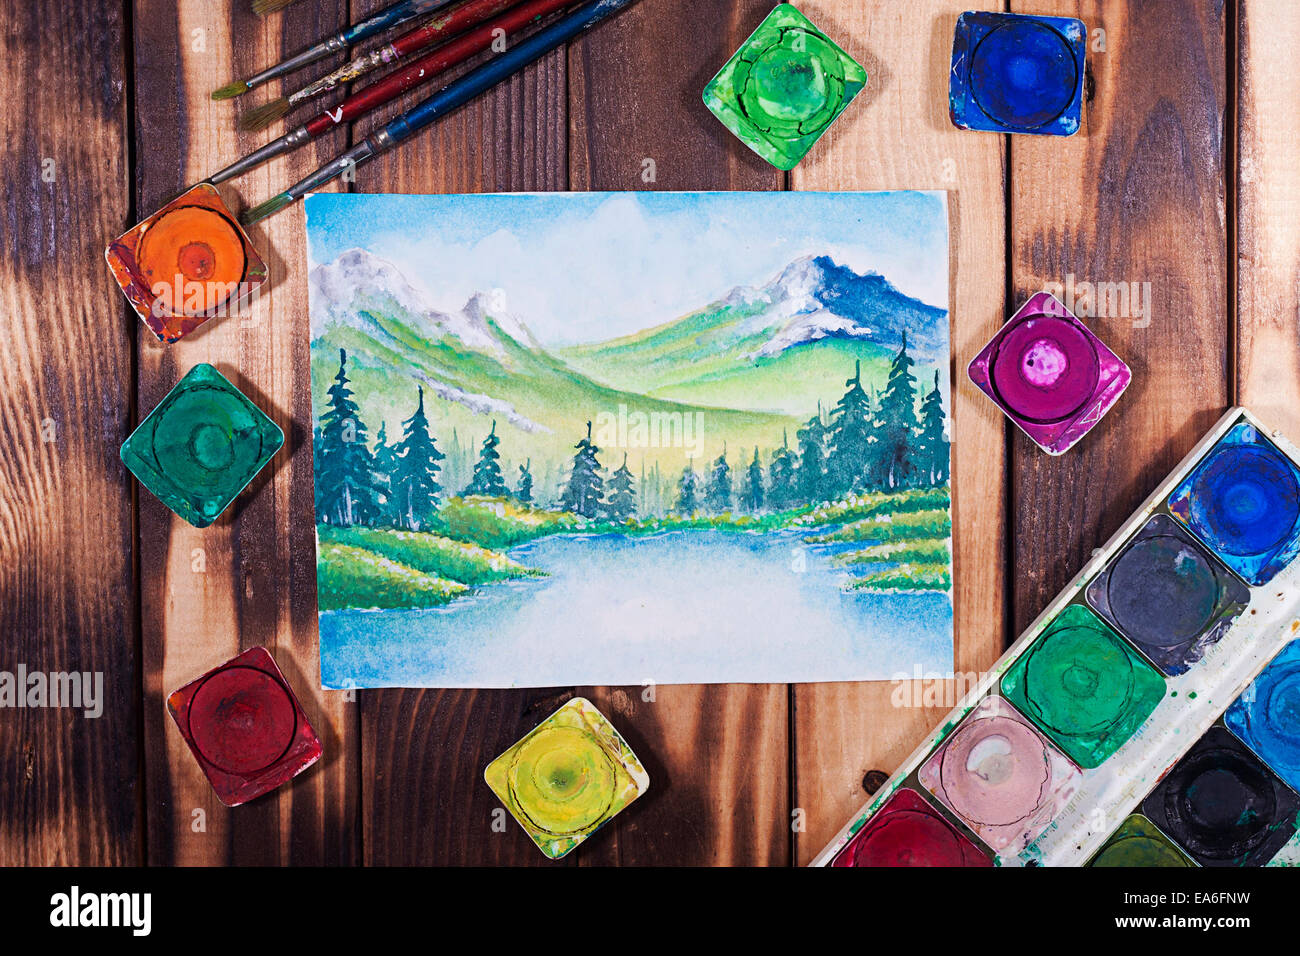 View of water color painting - Stock Image